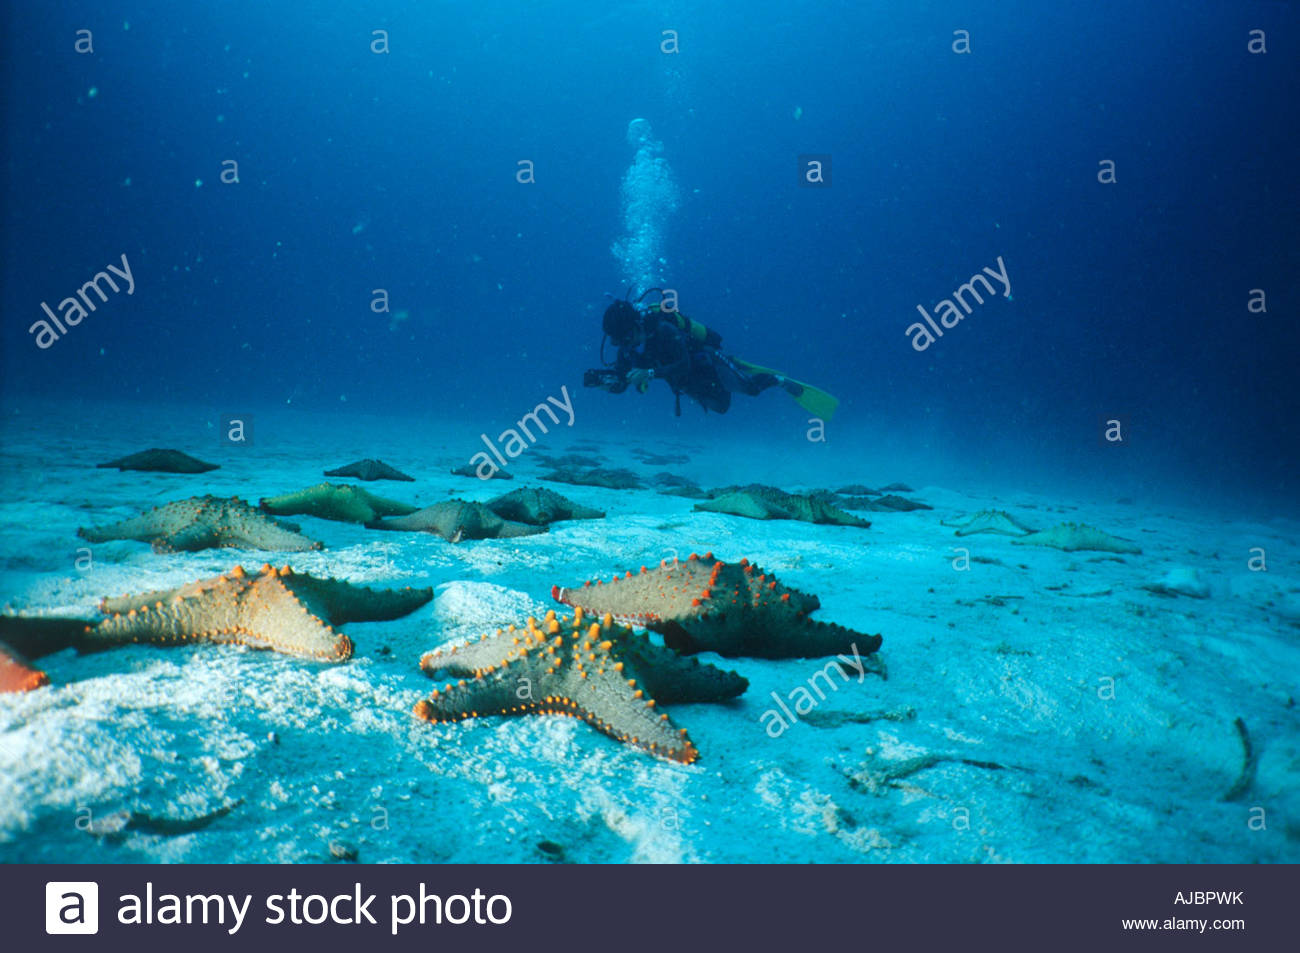 Starfish on Seabed with Scuba Diver in Background Stock Photo 1300x953